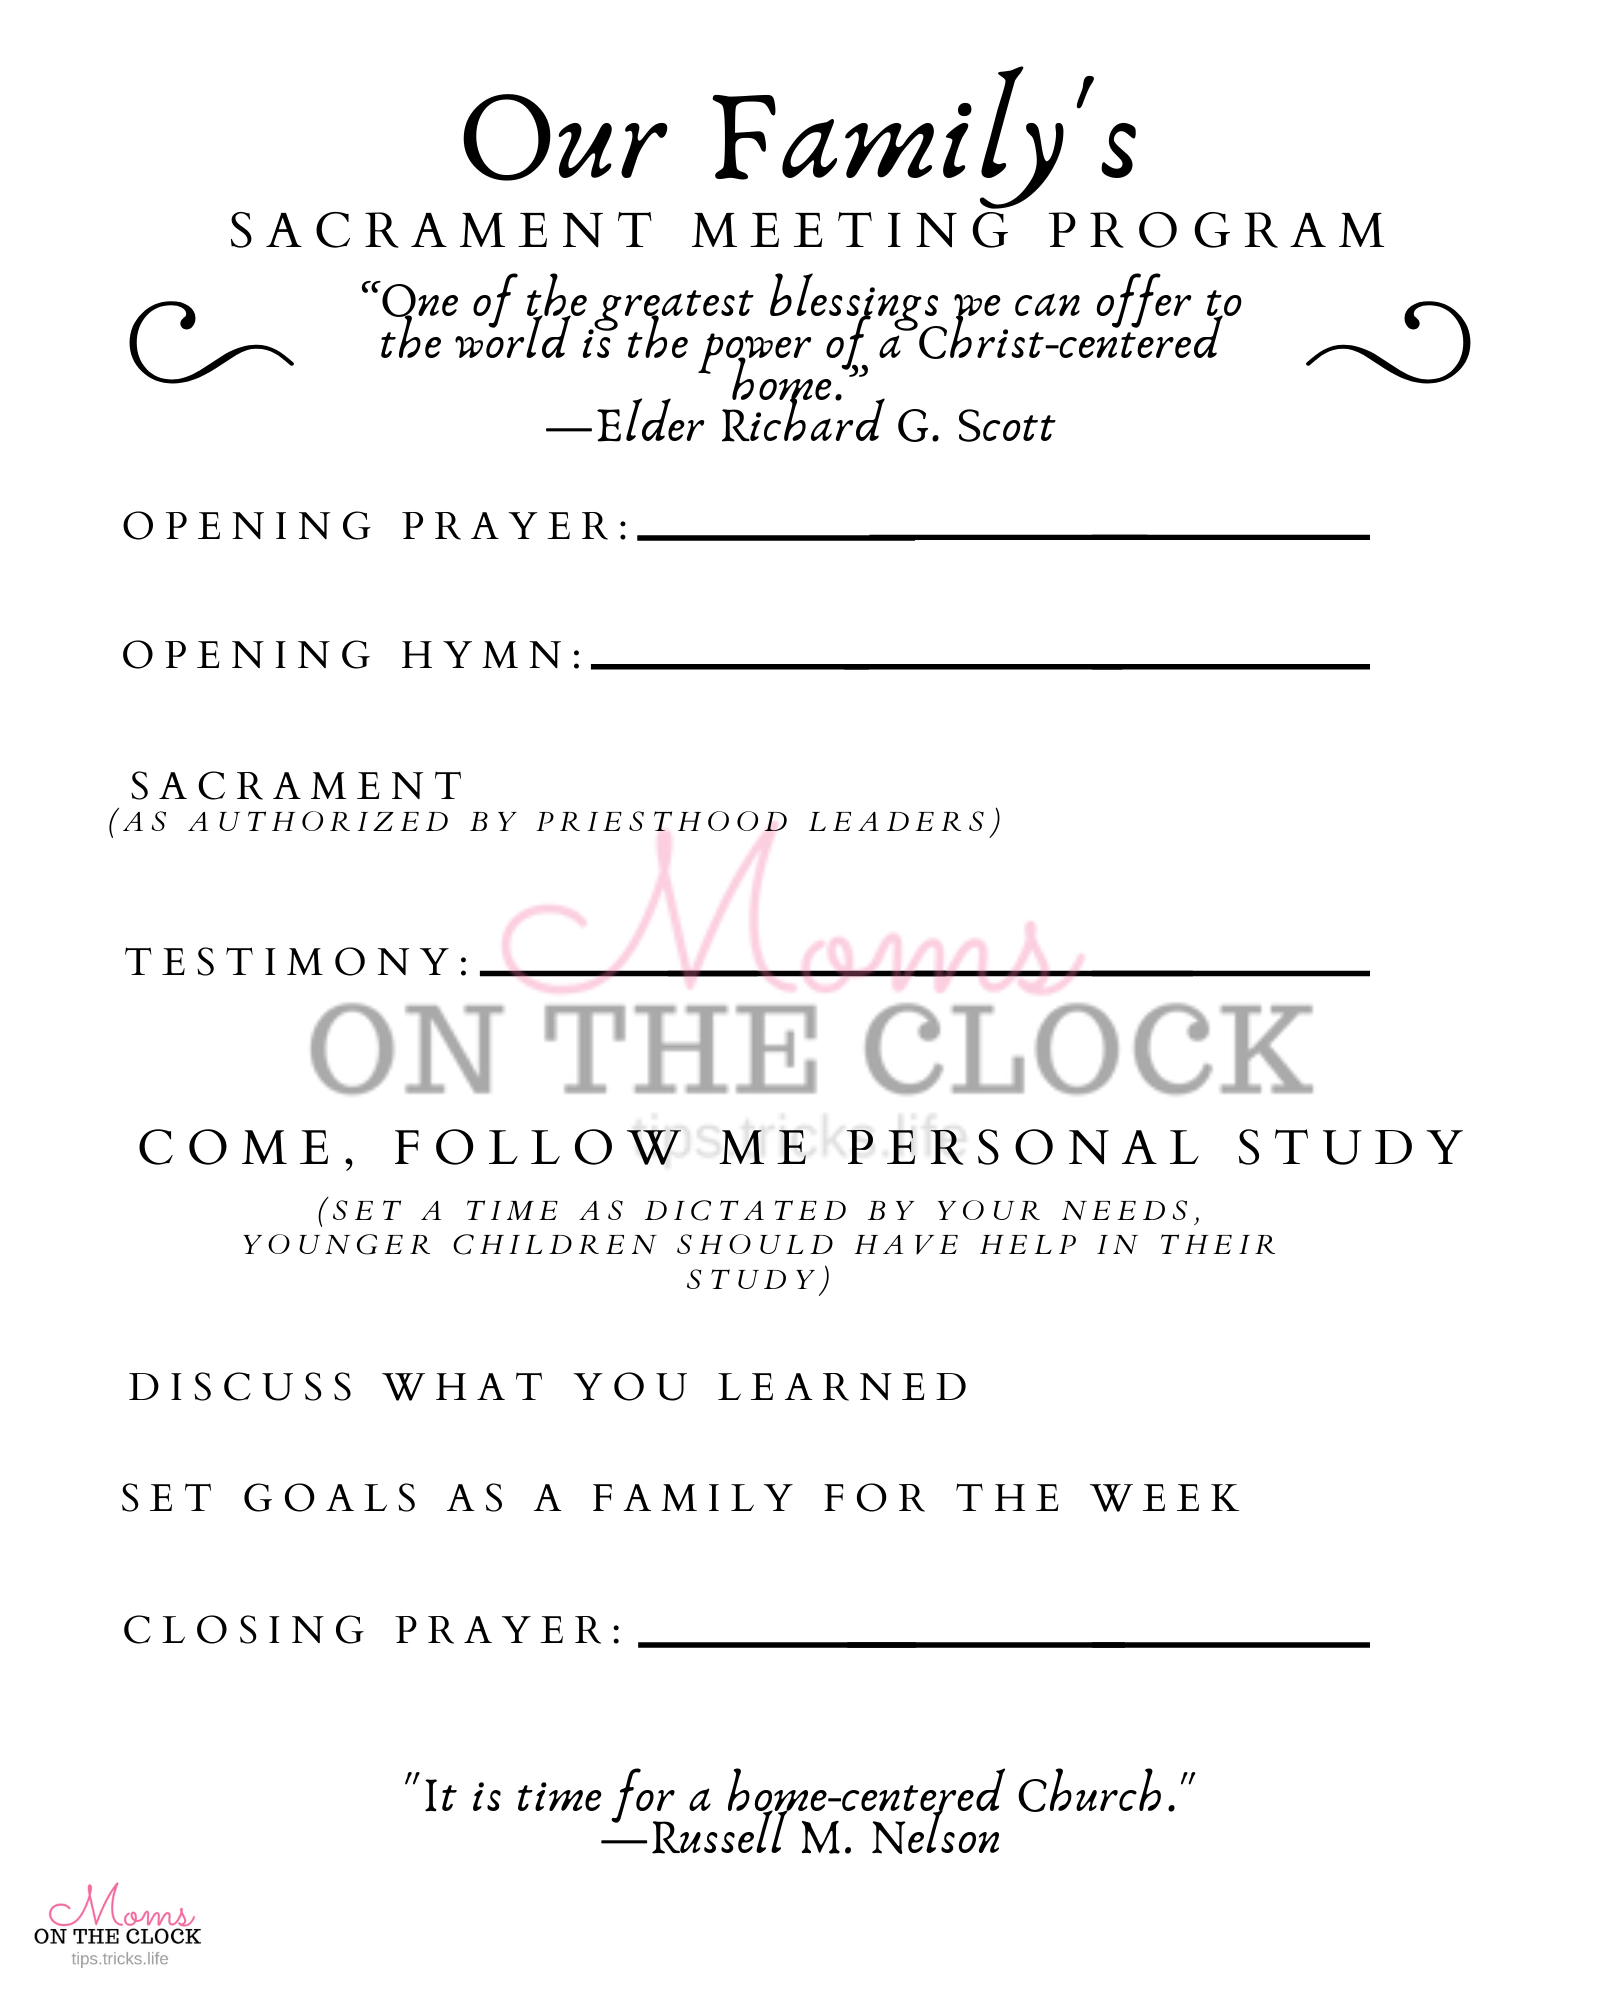 Family Sacrament Schedule Free Printable Moms On The Clock